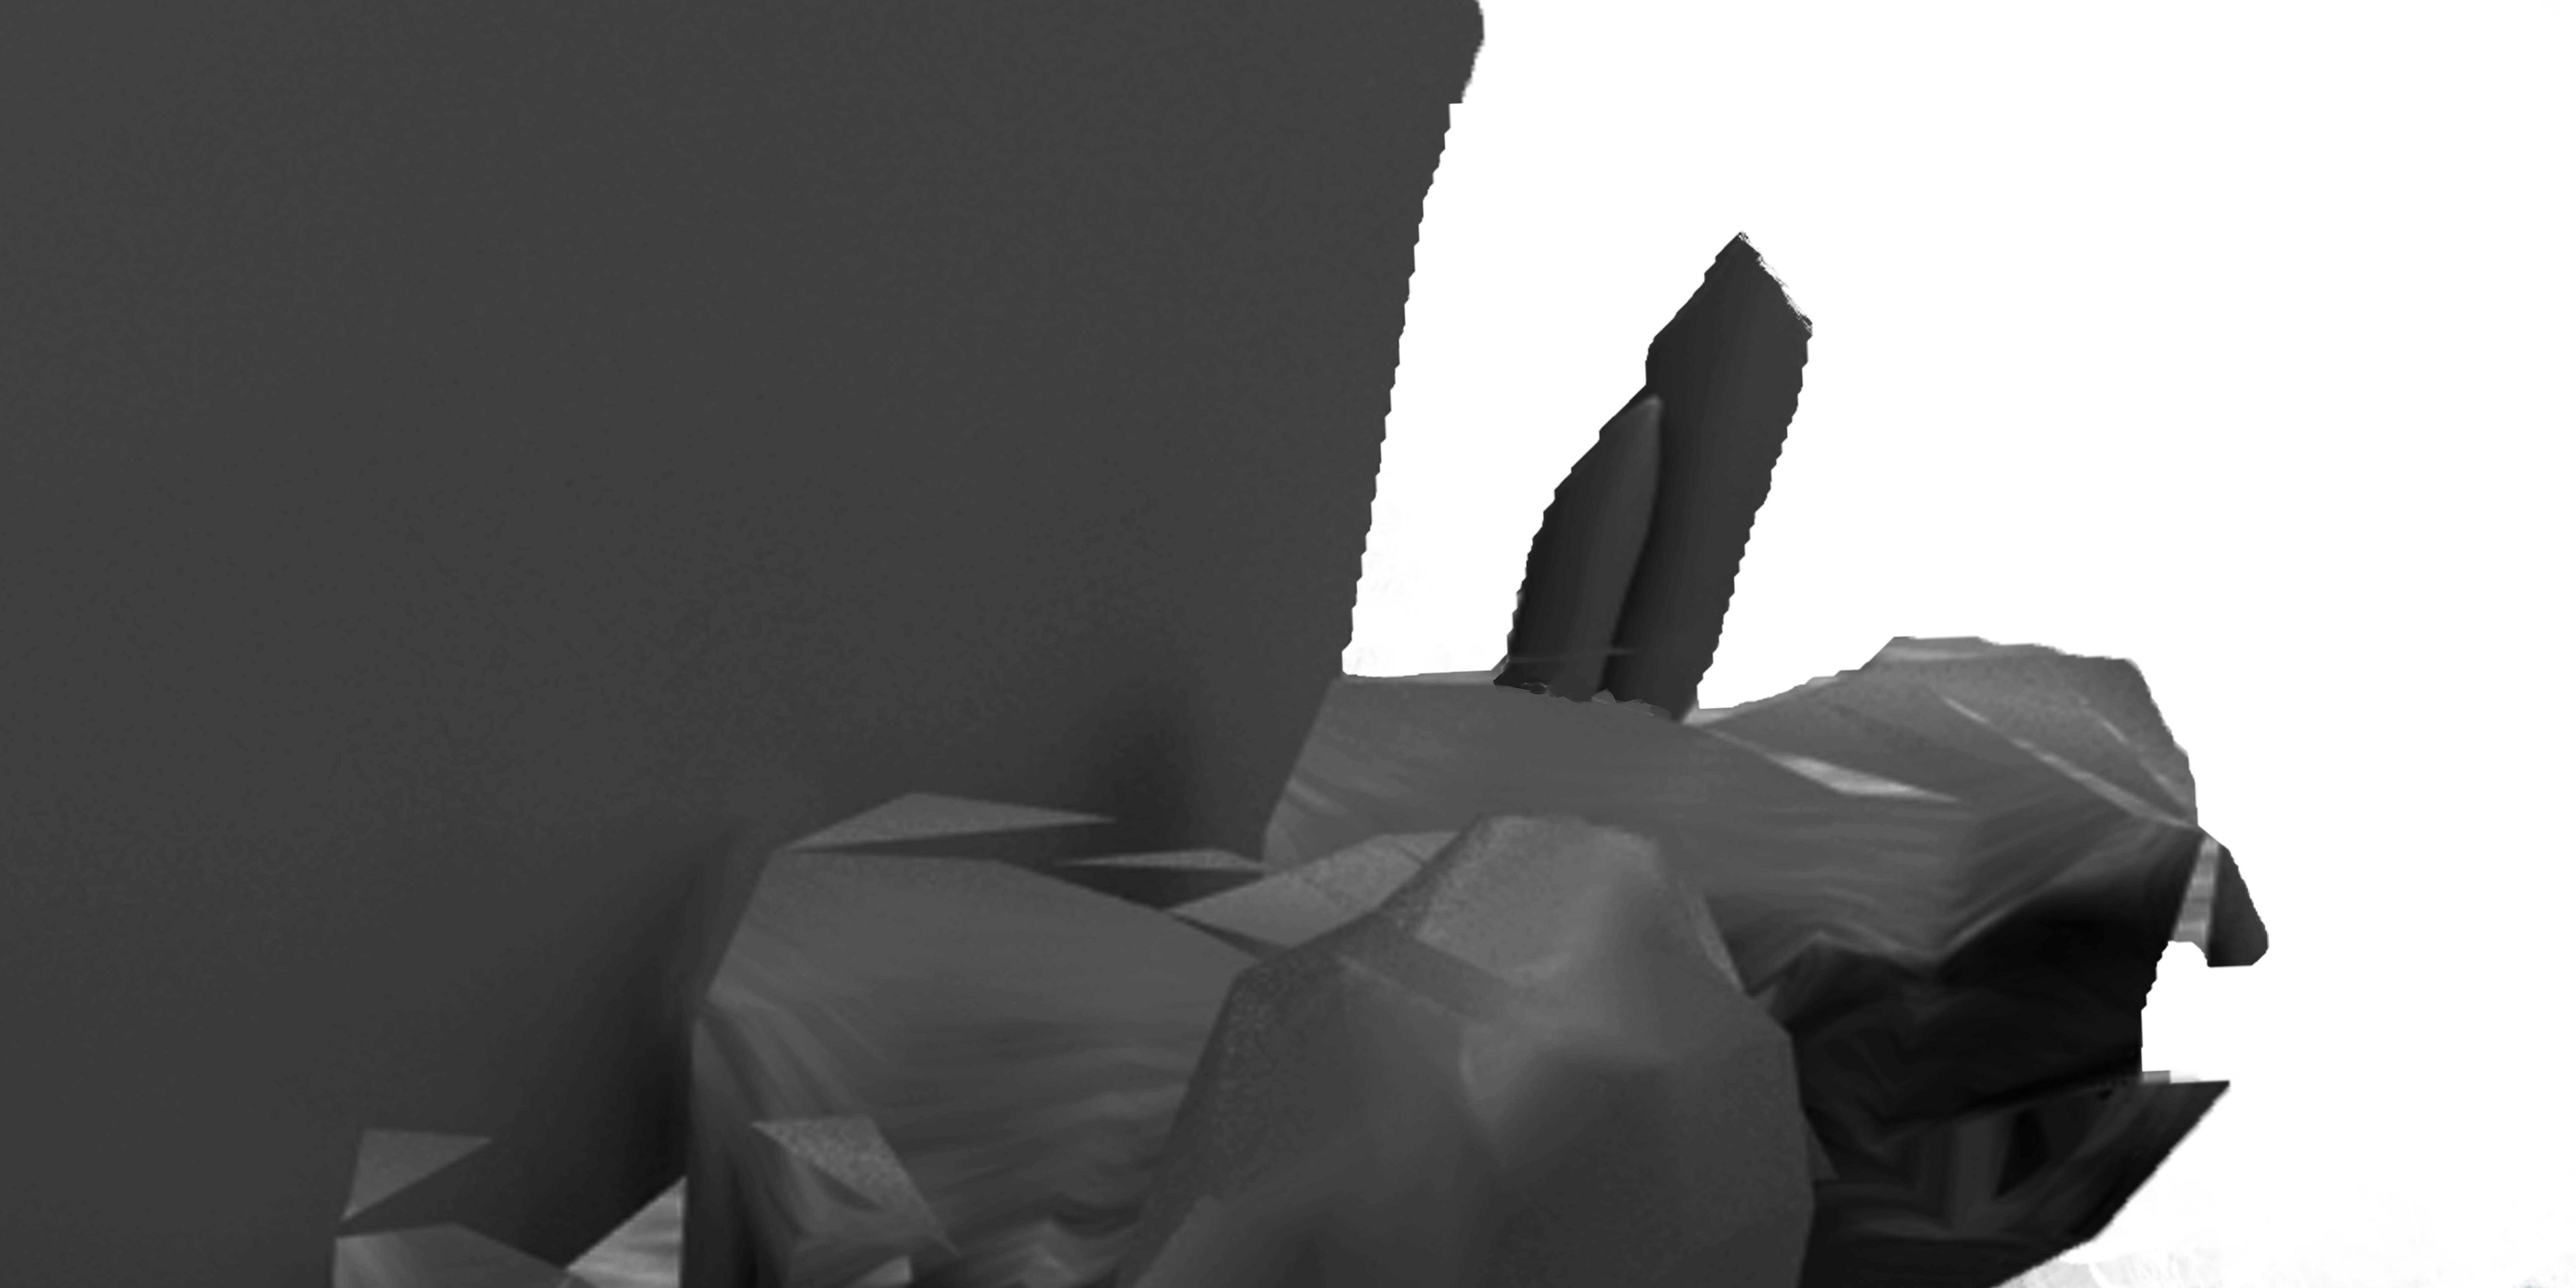 The terrible 3D base I modelled.